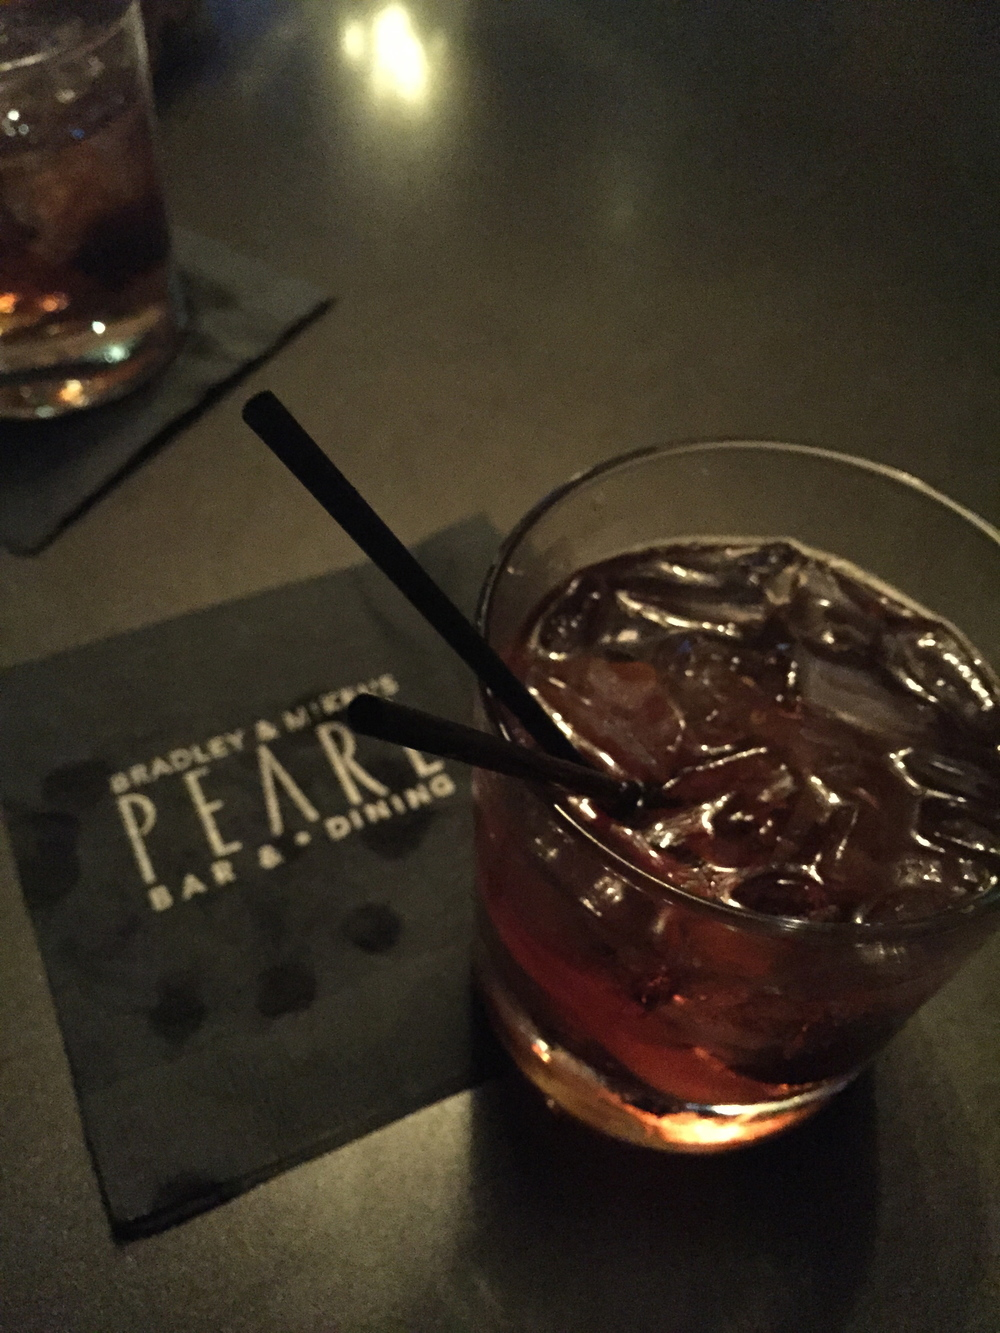 Monk's Old Fashioned at Pearl Bar & Dining